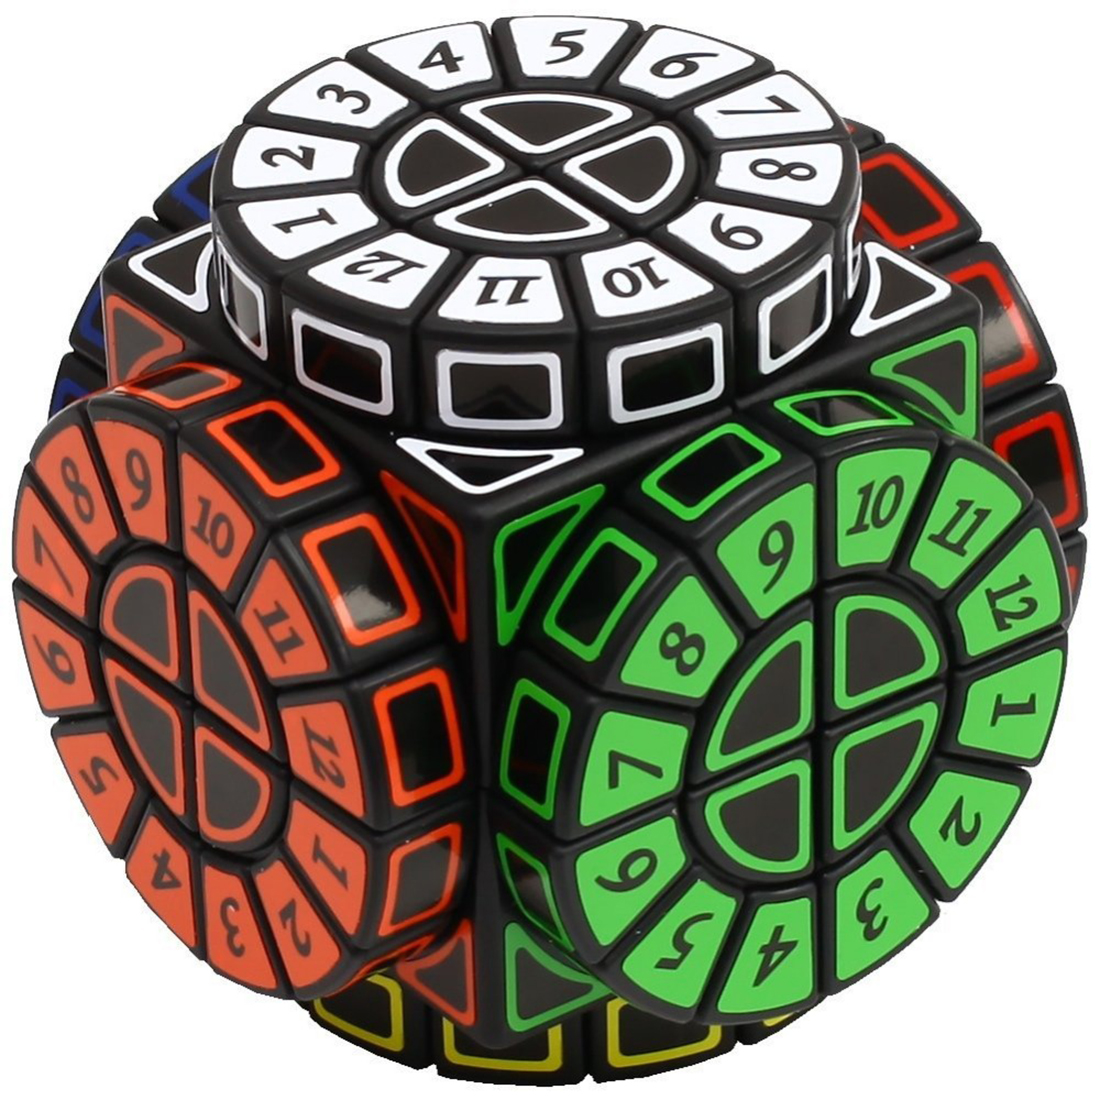 Cube Style 2x2 Time Machine Cube Stickers Speed Magic Cube Puzzle Limited Version Shape of Wheels of Wisdom Cubo Magico Learning стоимость